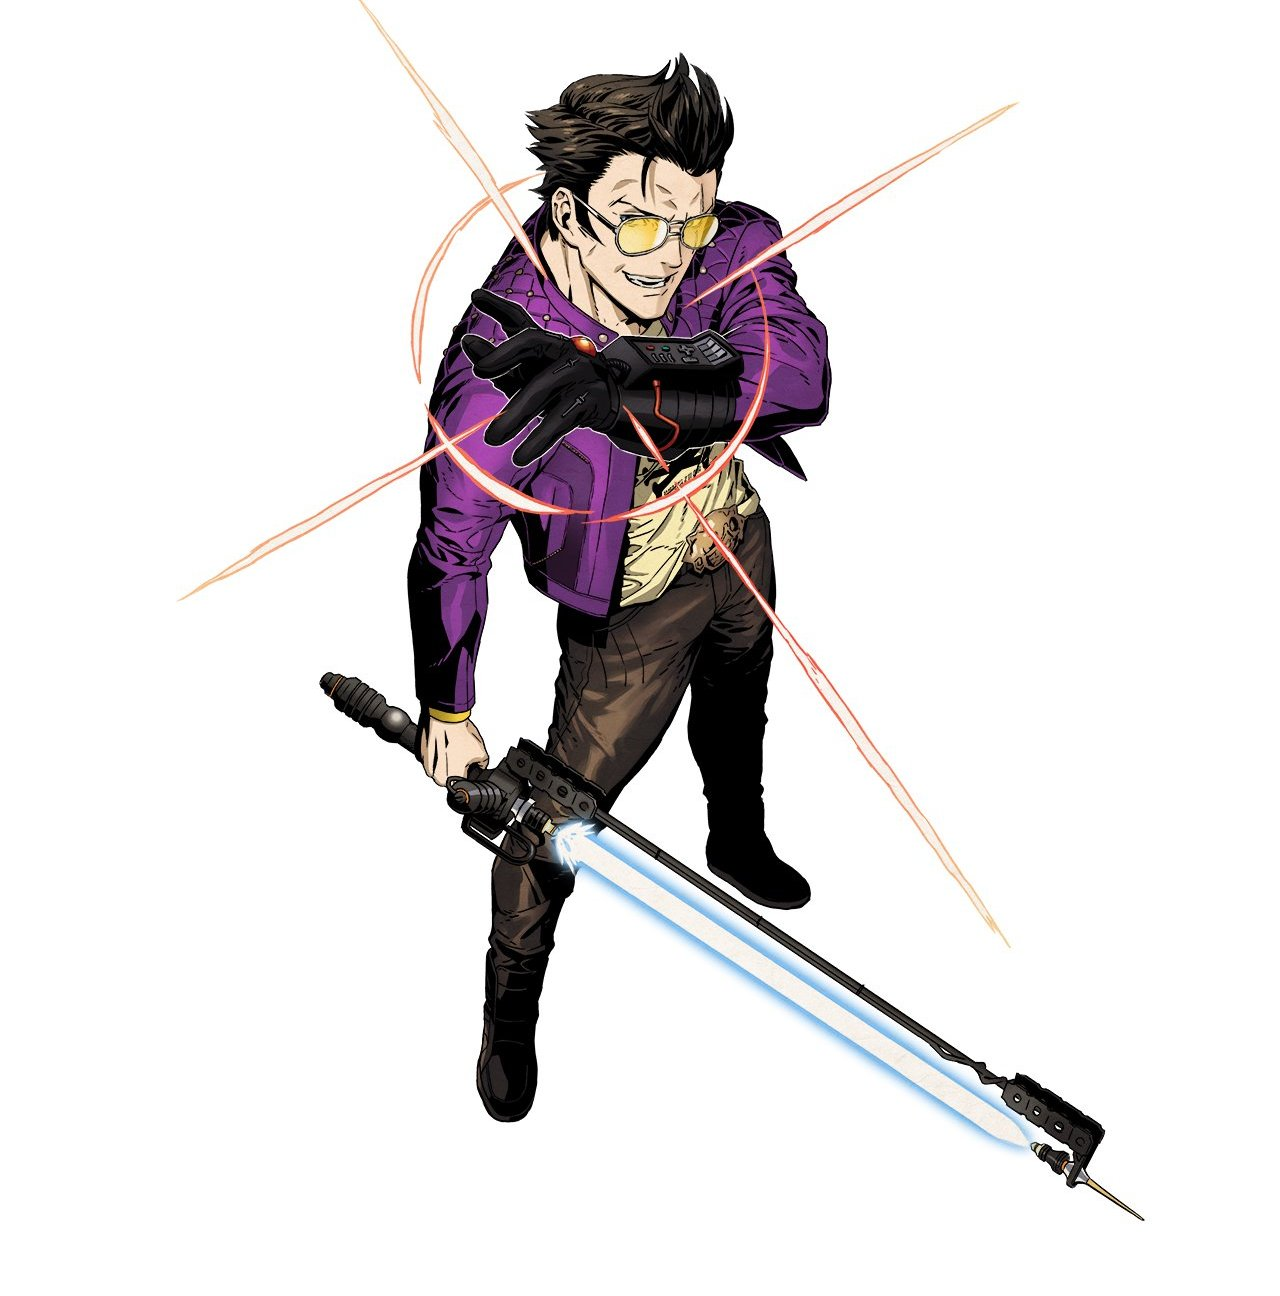 Travis Strikes Again Concept Art - Travis Touchdown